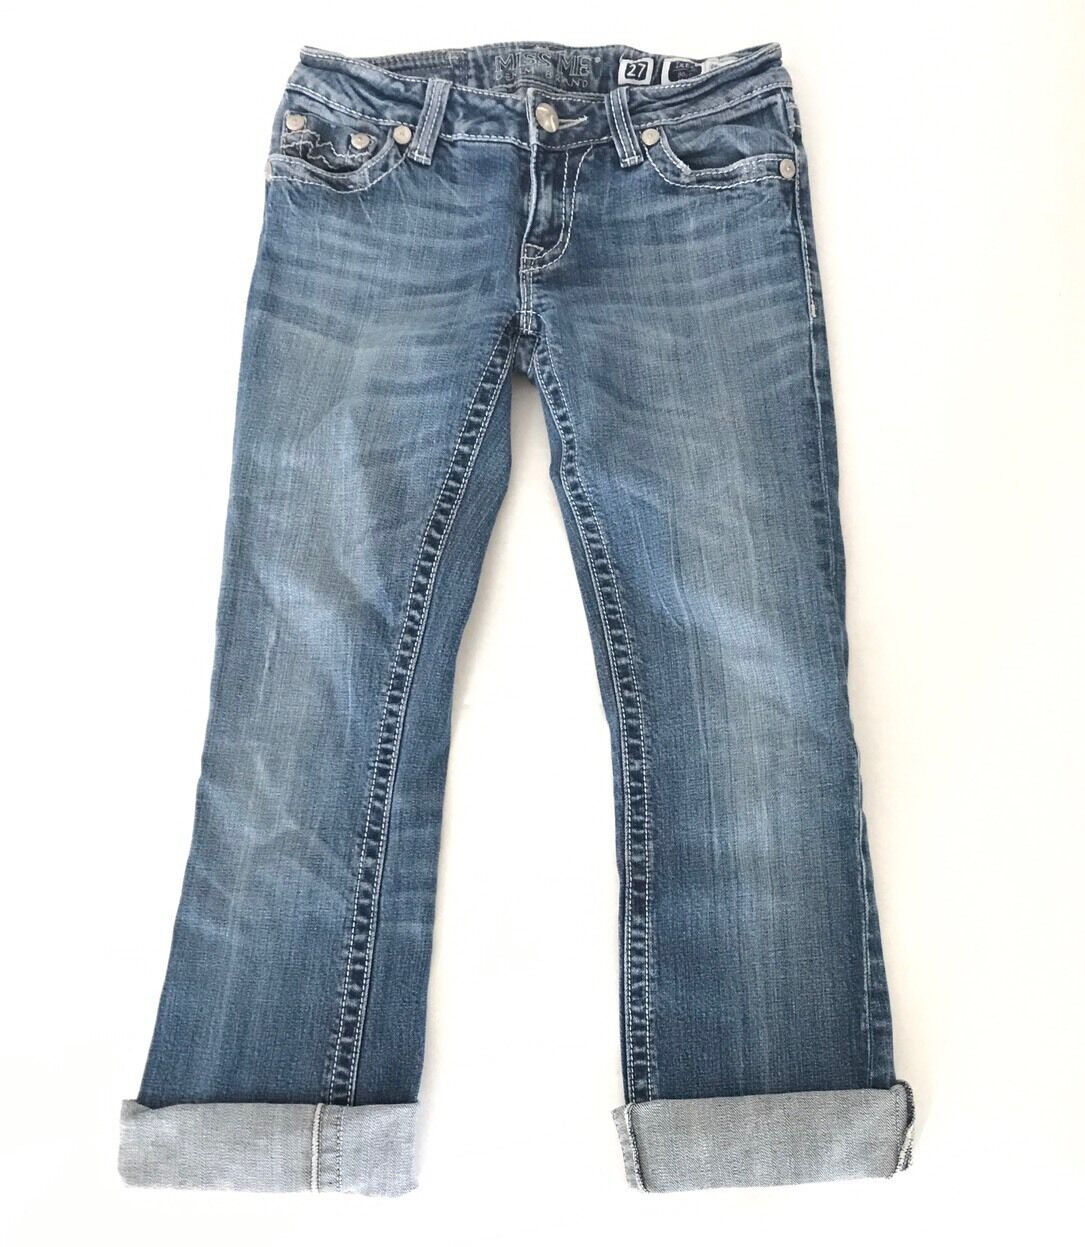 Miss Me Bootcut Jeans Size 27 x 28 Embellished bluee Denim Button Pants JPD1001F